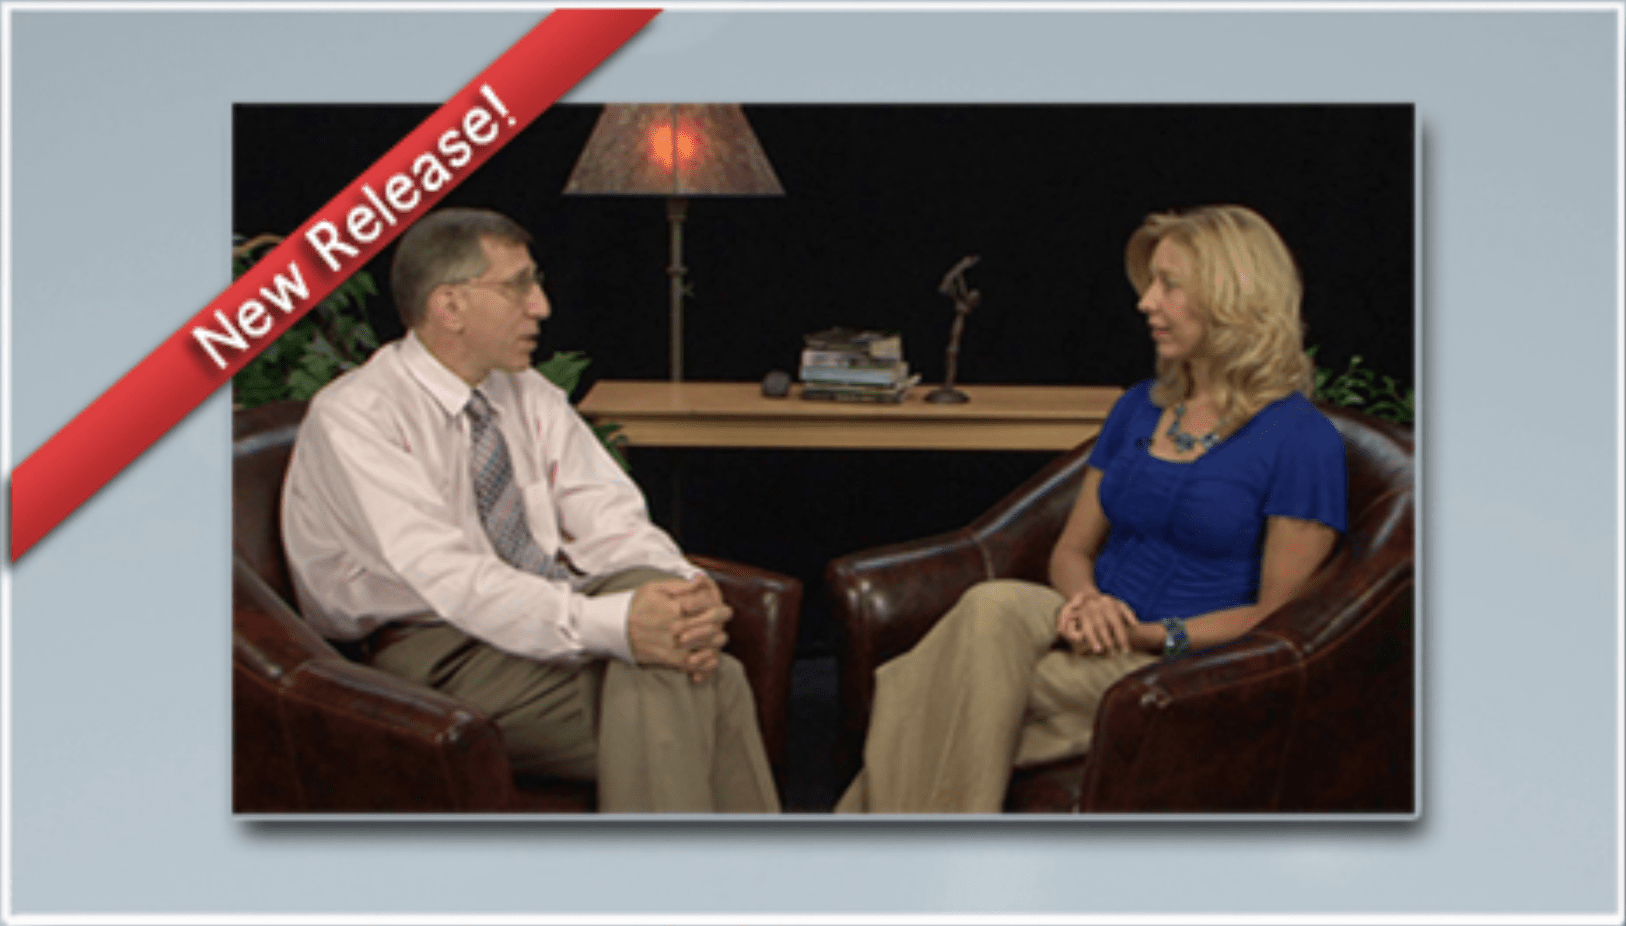 image showing Dr. Federici and Heather T. Forbes sitting and talking